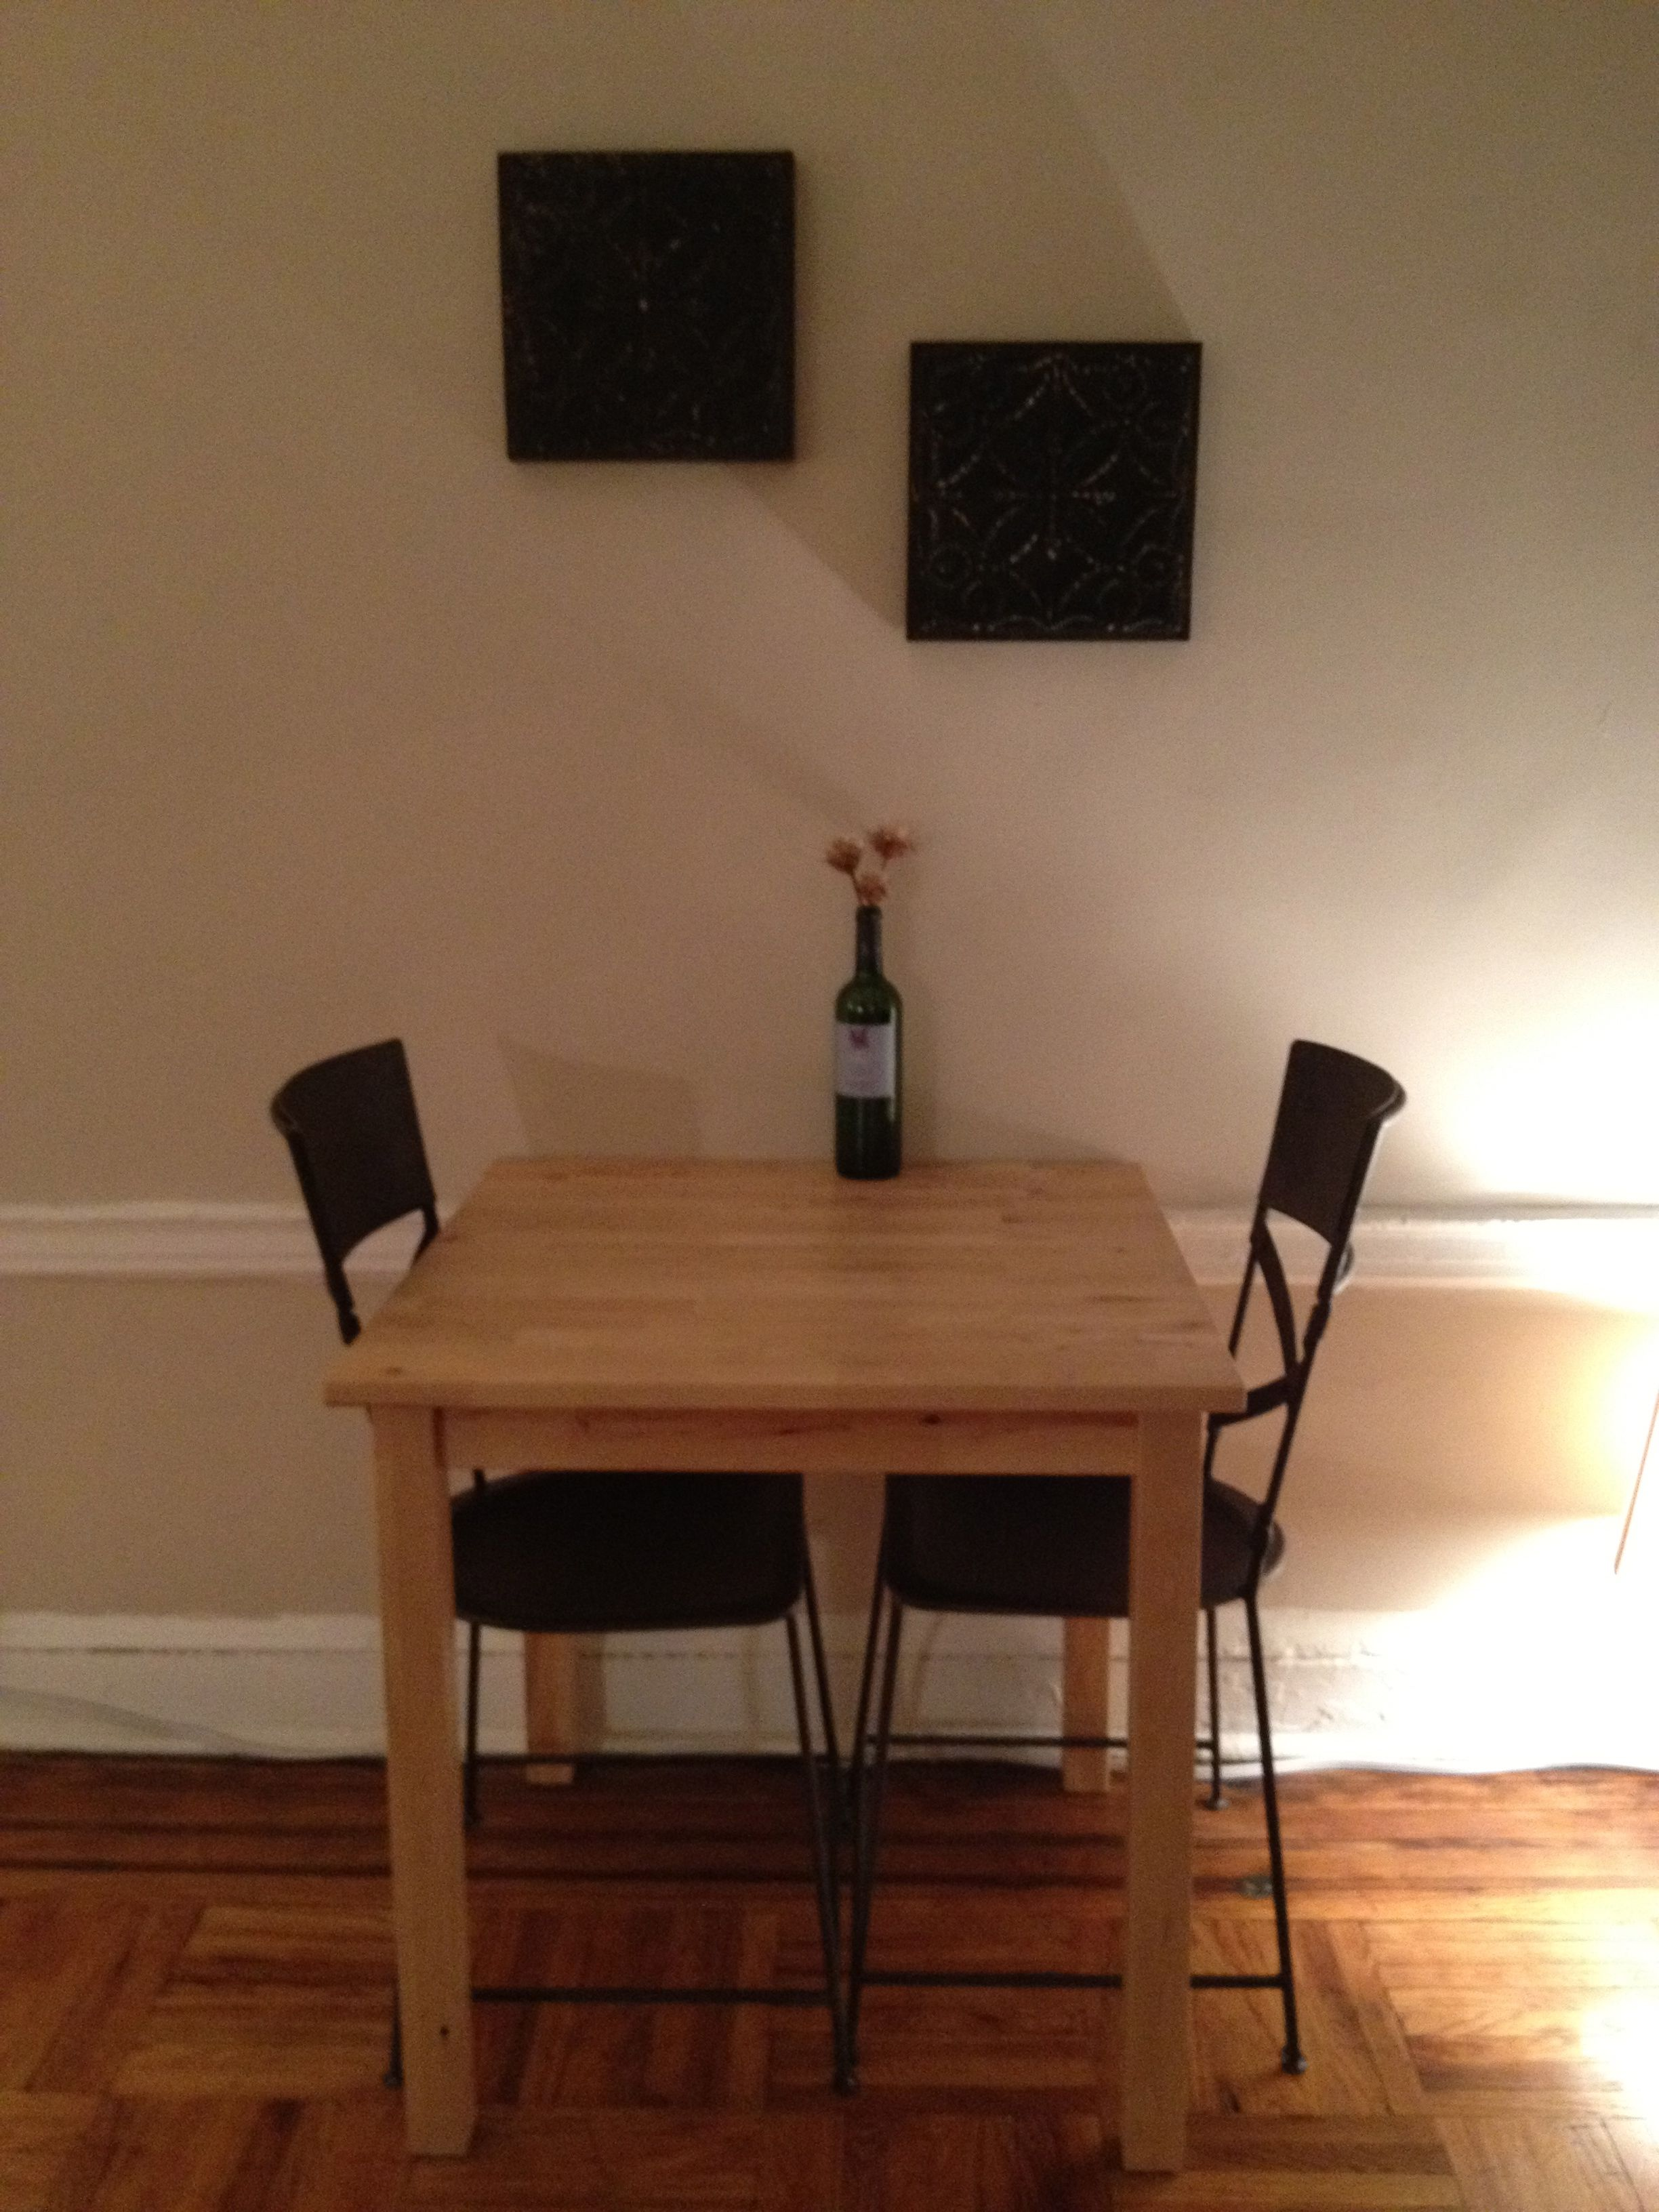 Dining area (at night time - lamp lighting).